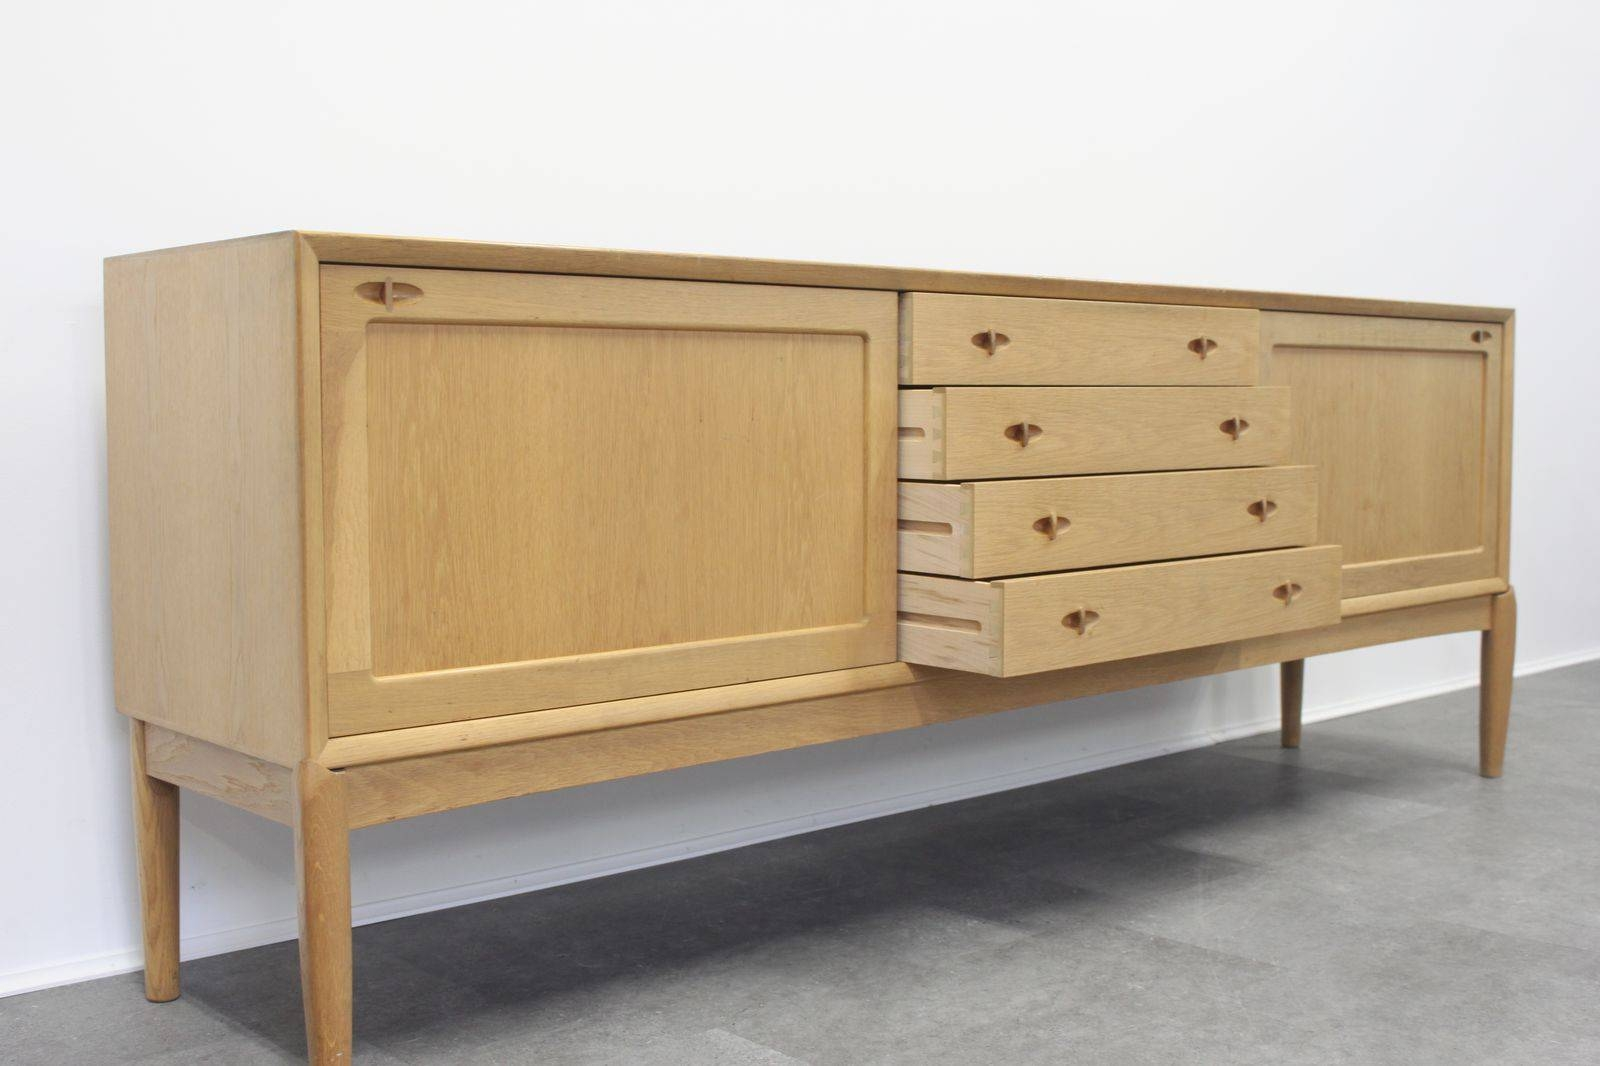 Vintage Oak Sideboardh.w. Klein For Bramin For Sale At Pamono with regard to Antique Oak Sideboards (Image 15 of 15)